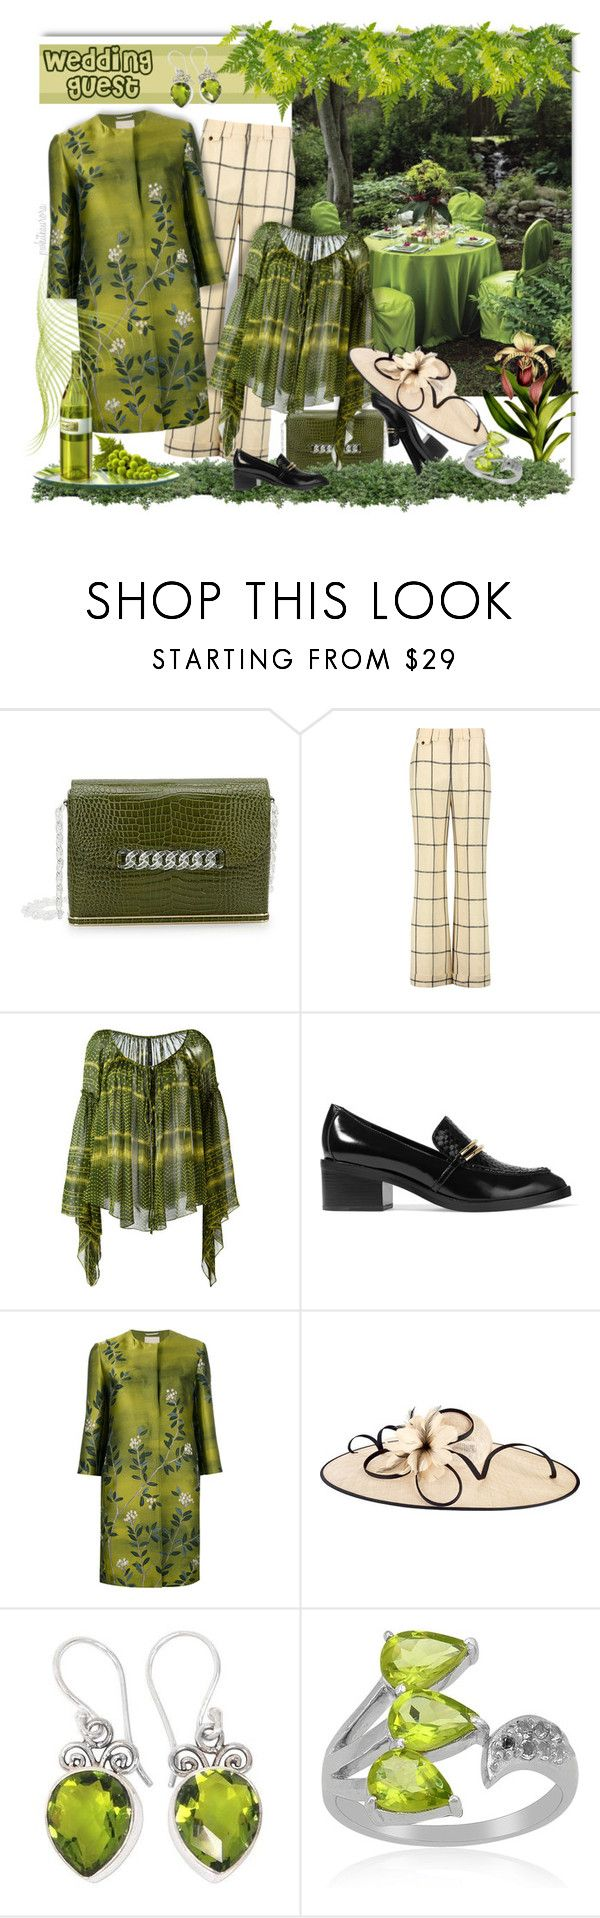 """""""Oh So Stylish Wedding Guest"""" by pwhiteaurora ❤ liked on Polyvore featuring Charlotte Olympia, Chloé, Plein Sud, Sigerson Morrison, 'S MaxMara, San Diego Hat Co. and NOVICA"""